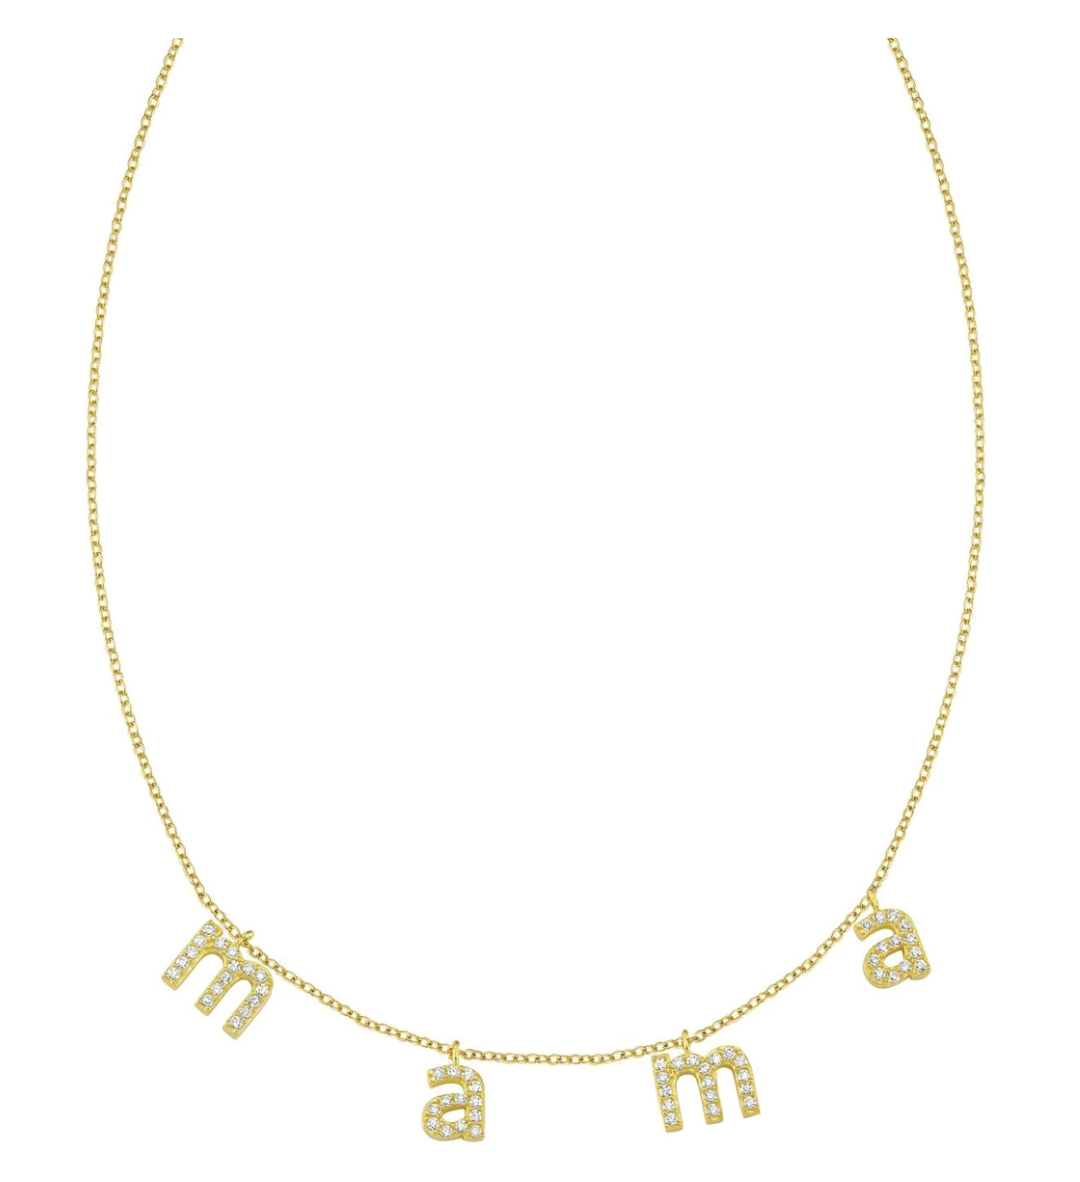 Initial Jewelry by popular San Francisco fashion blog, Just Add Glam: image of a its all in a name necklace.